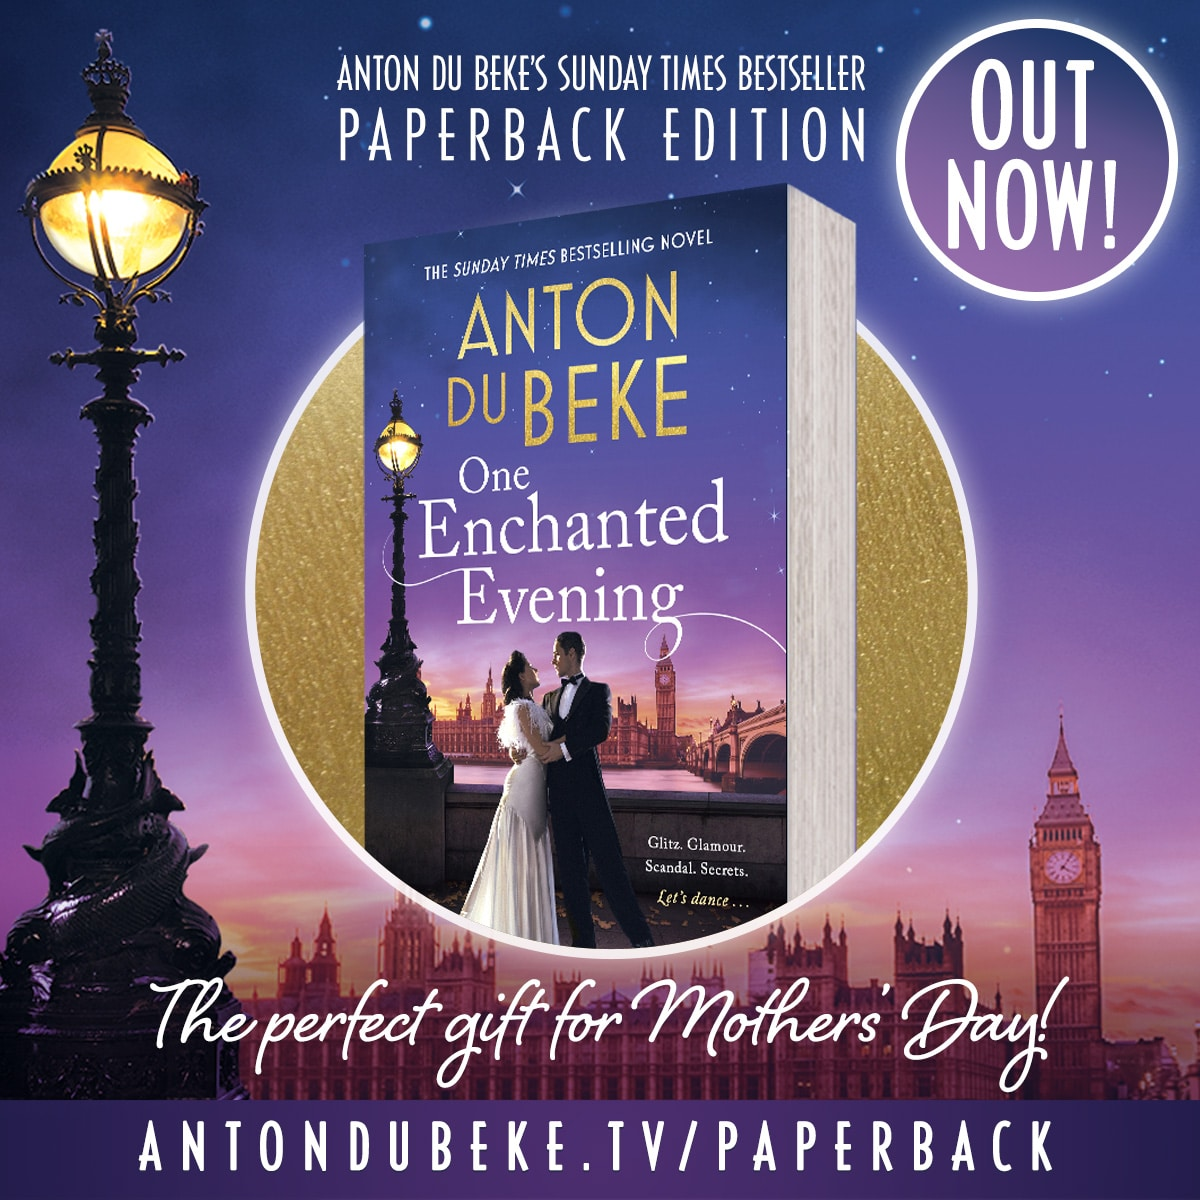 One Enchanted Evening - out now in paperback!